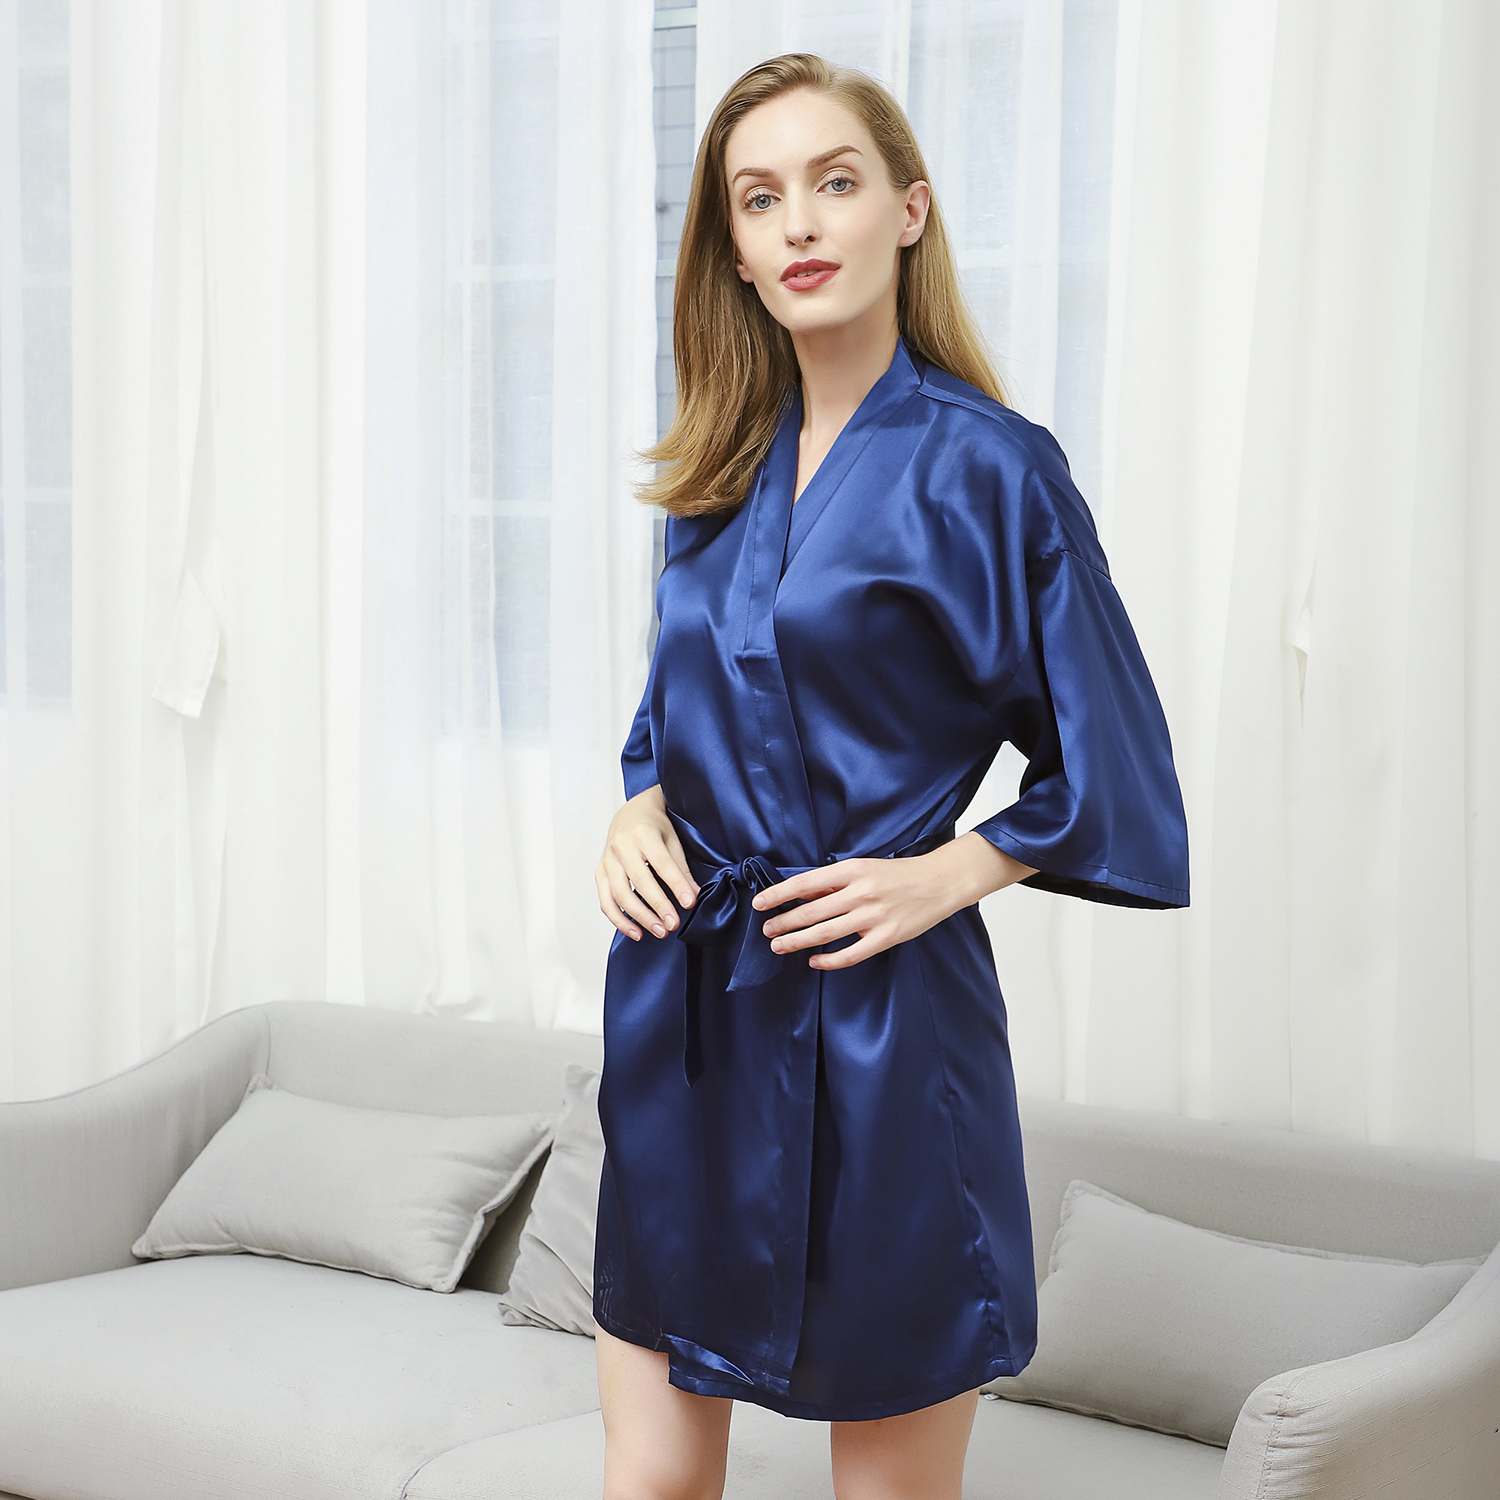 Navy Blue Lady Short Kimono Bathrobe Women Satin Sleepwear Solid Color Wedding Bride Bridesmaid Robe Lounge Home Wear M-XL